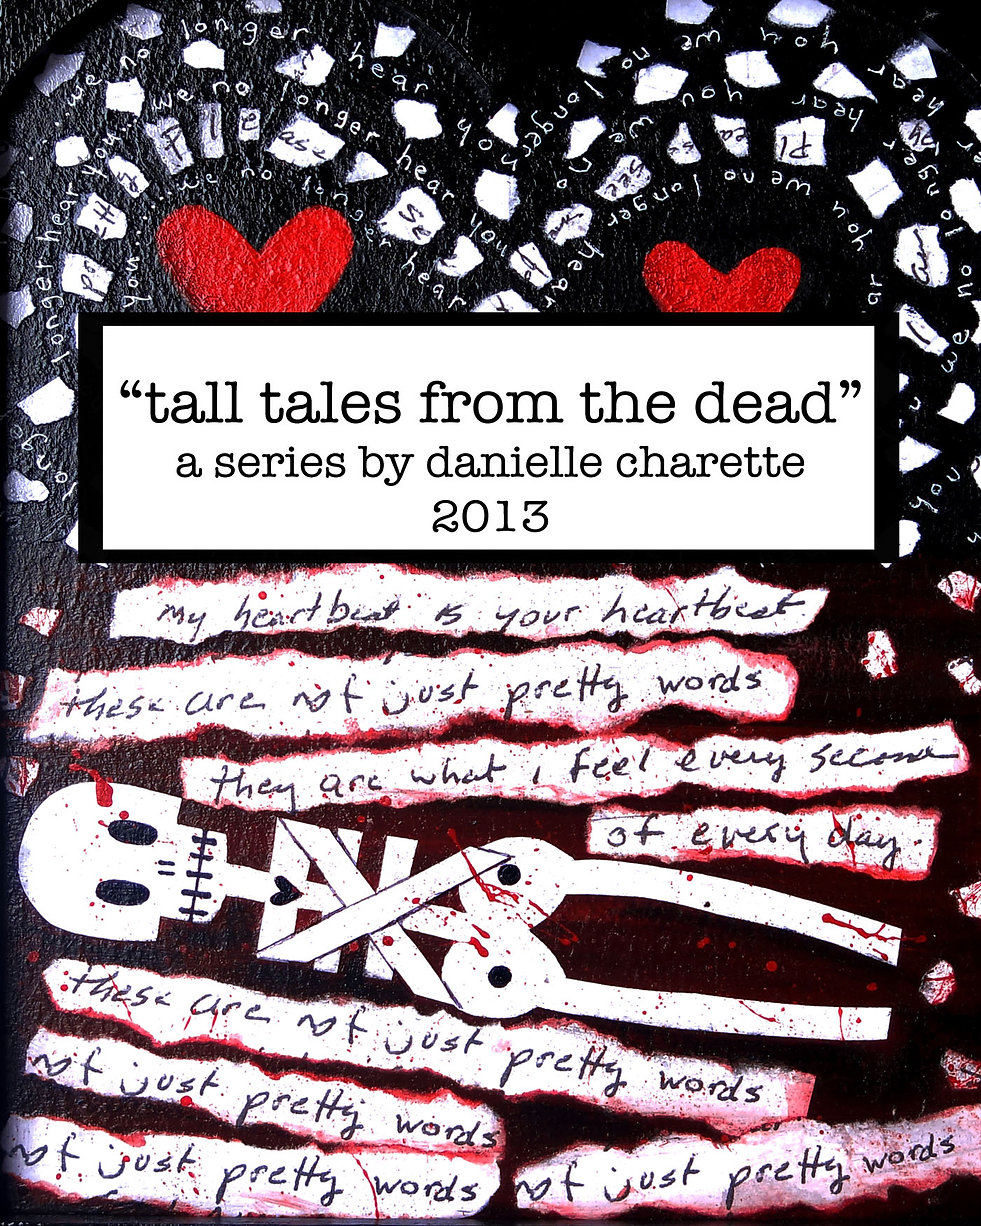 artist danielle charette tall tales from the dead painting series